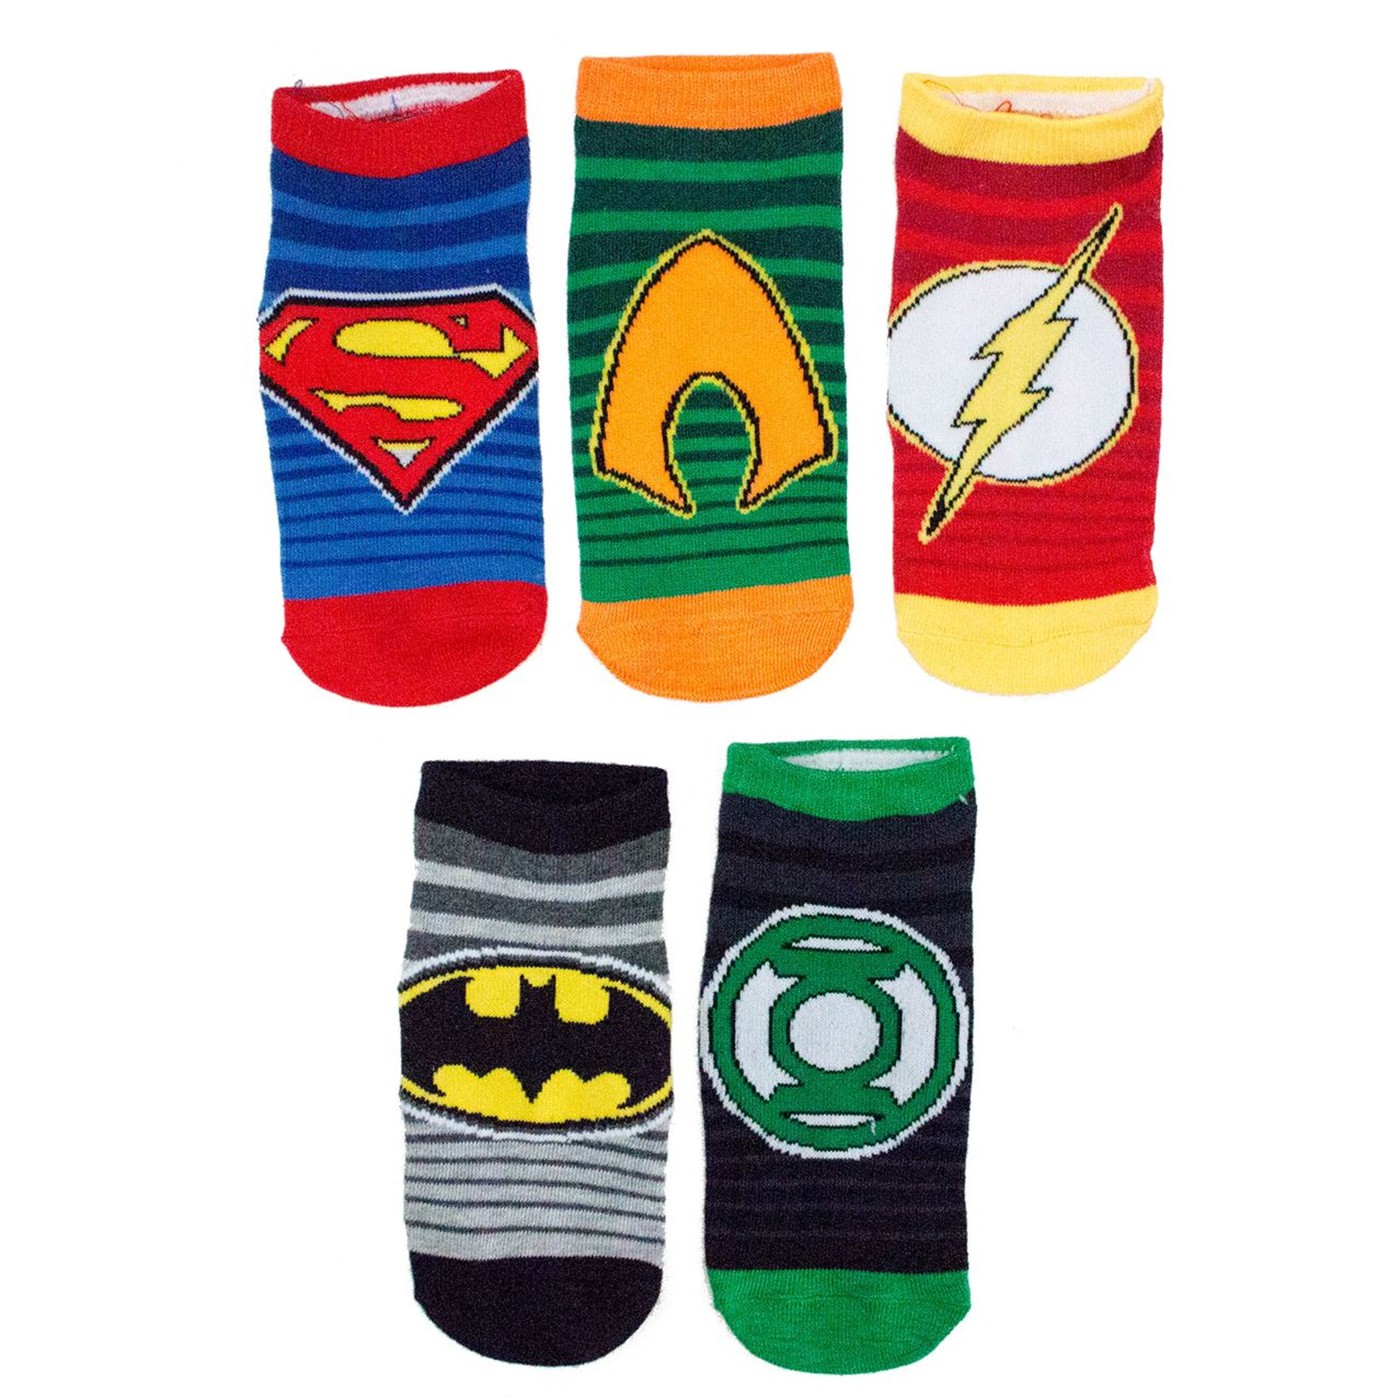 DC Comics Symbols Boys 5 Pair Low Cut Socks